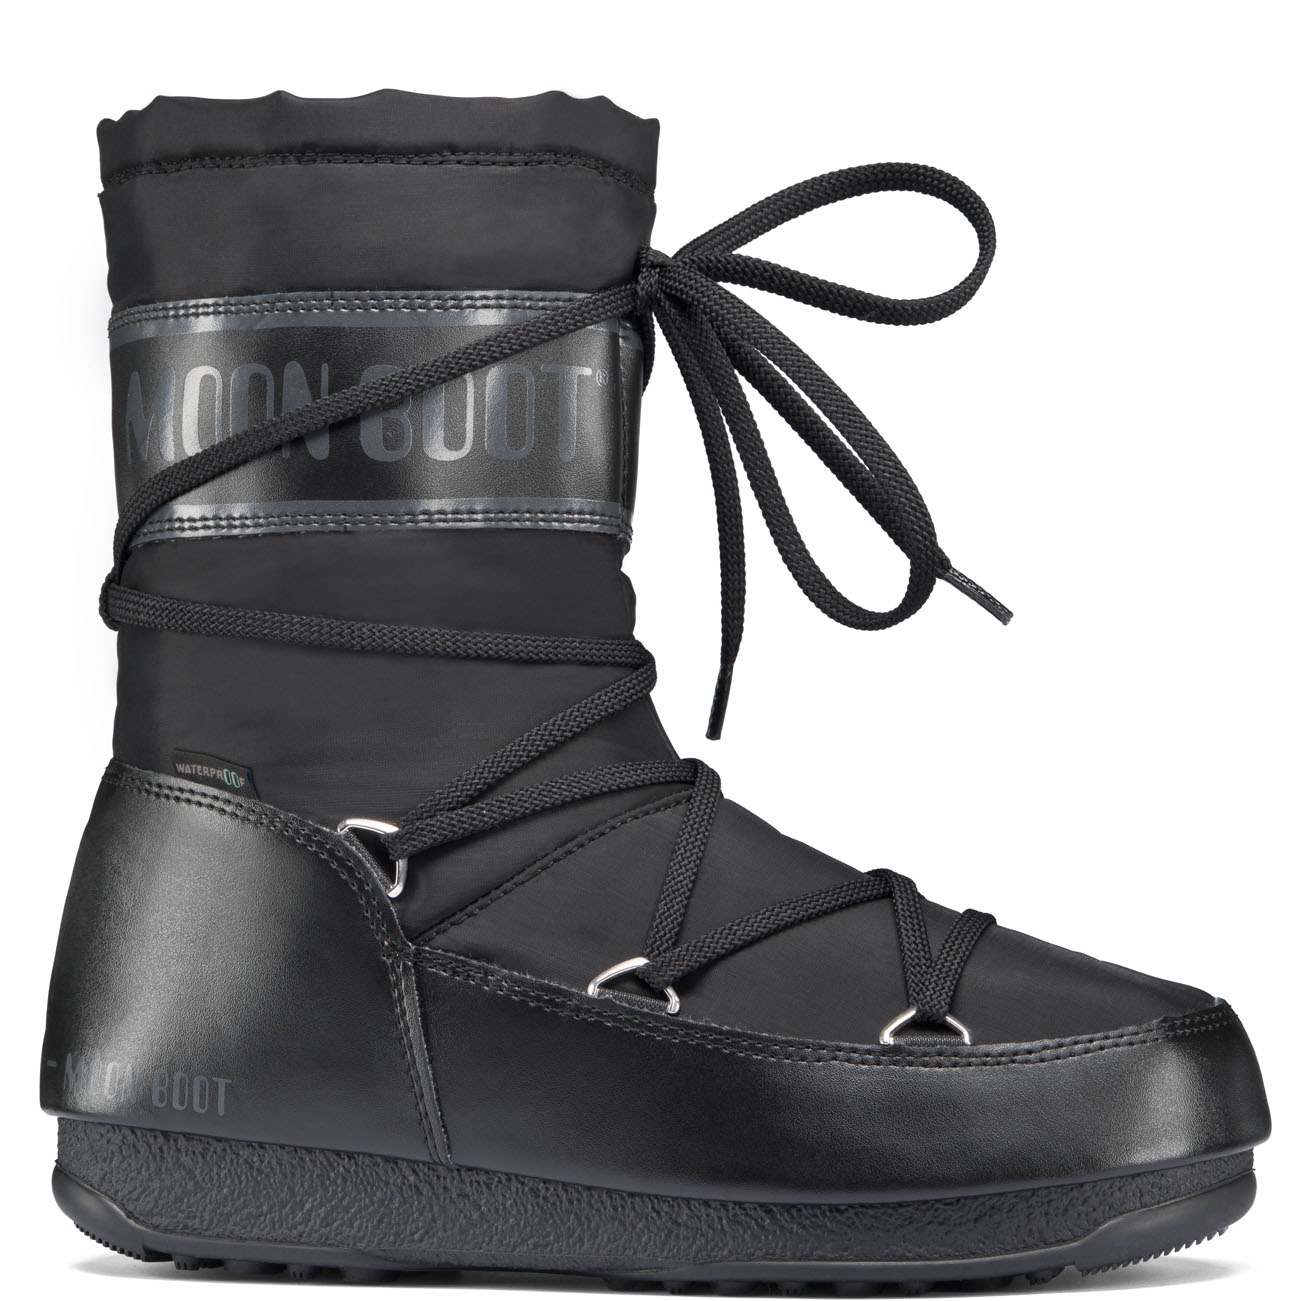 Ladies Tecnica Moon Boot WE Soft Winter Shade Mid WP Winter Soft Warm Thermal Boot All Sizes 6fd68f